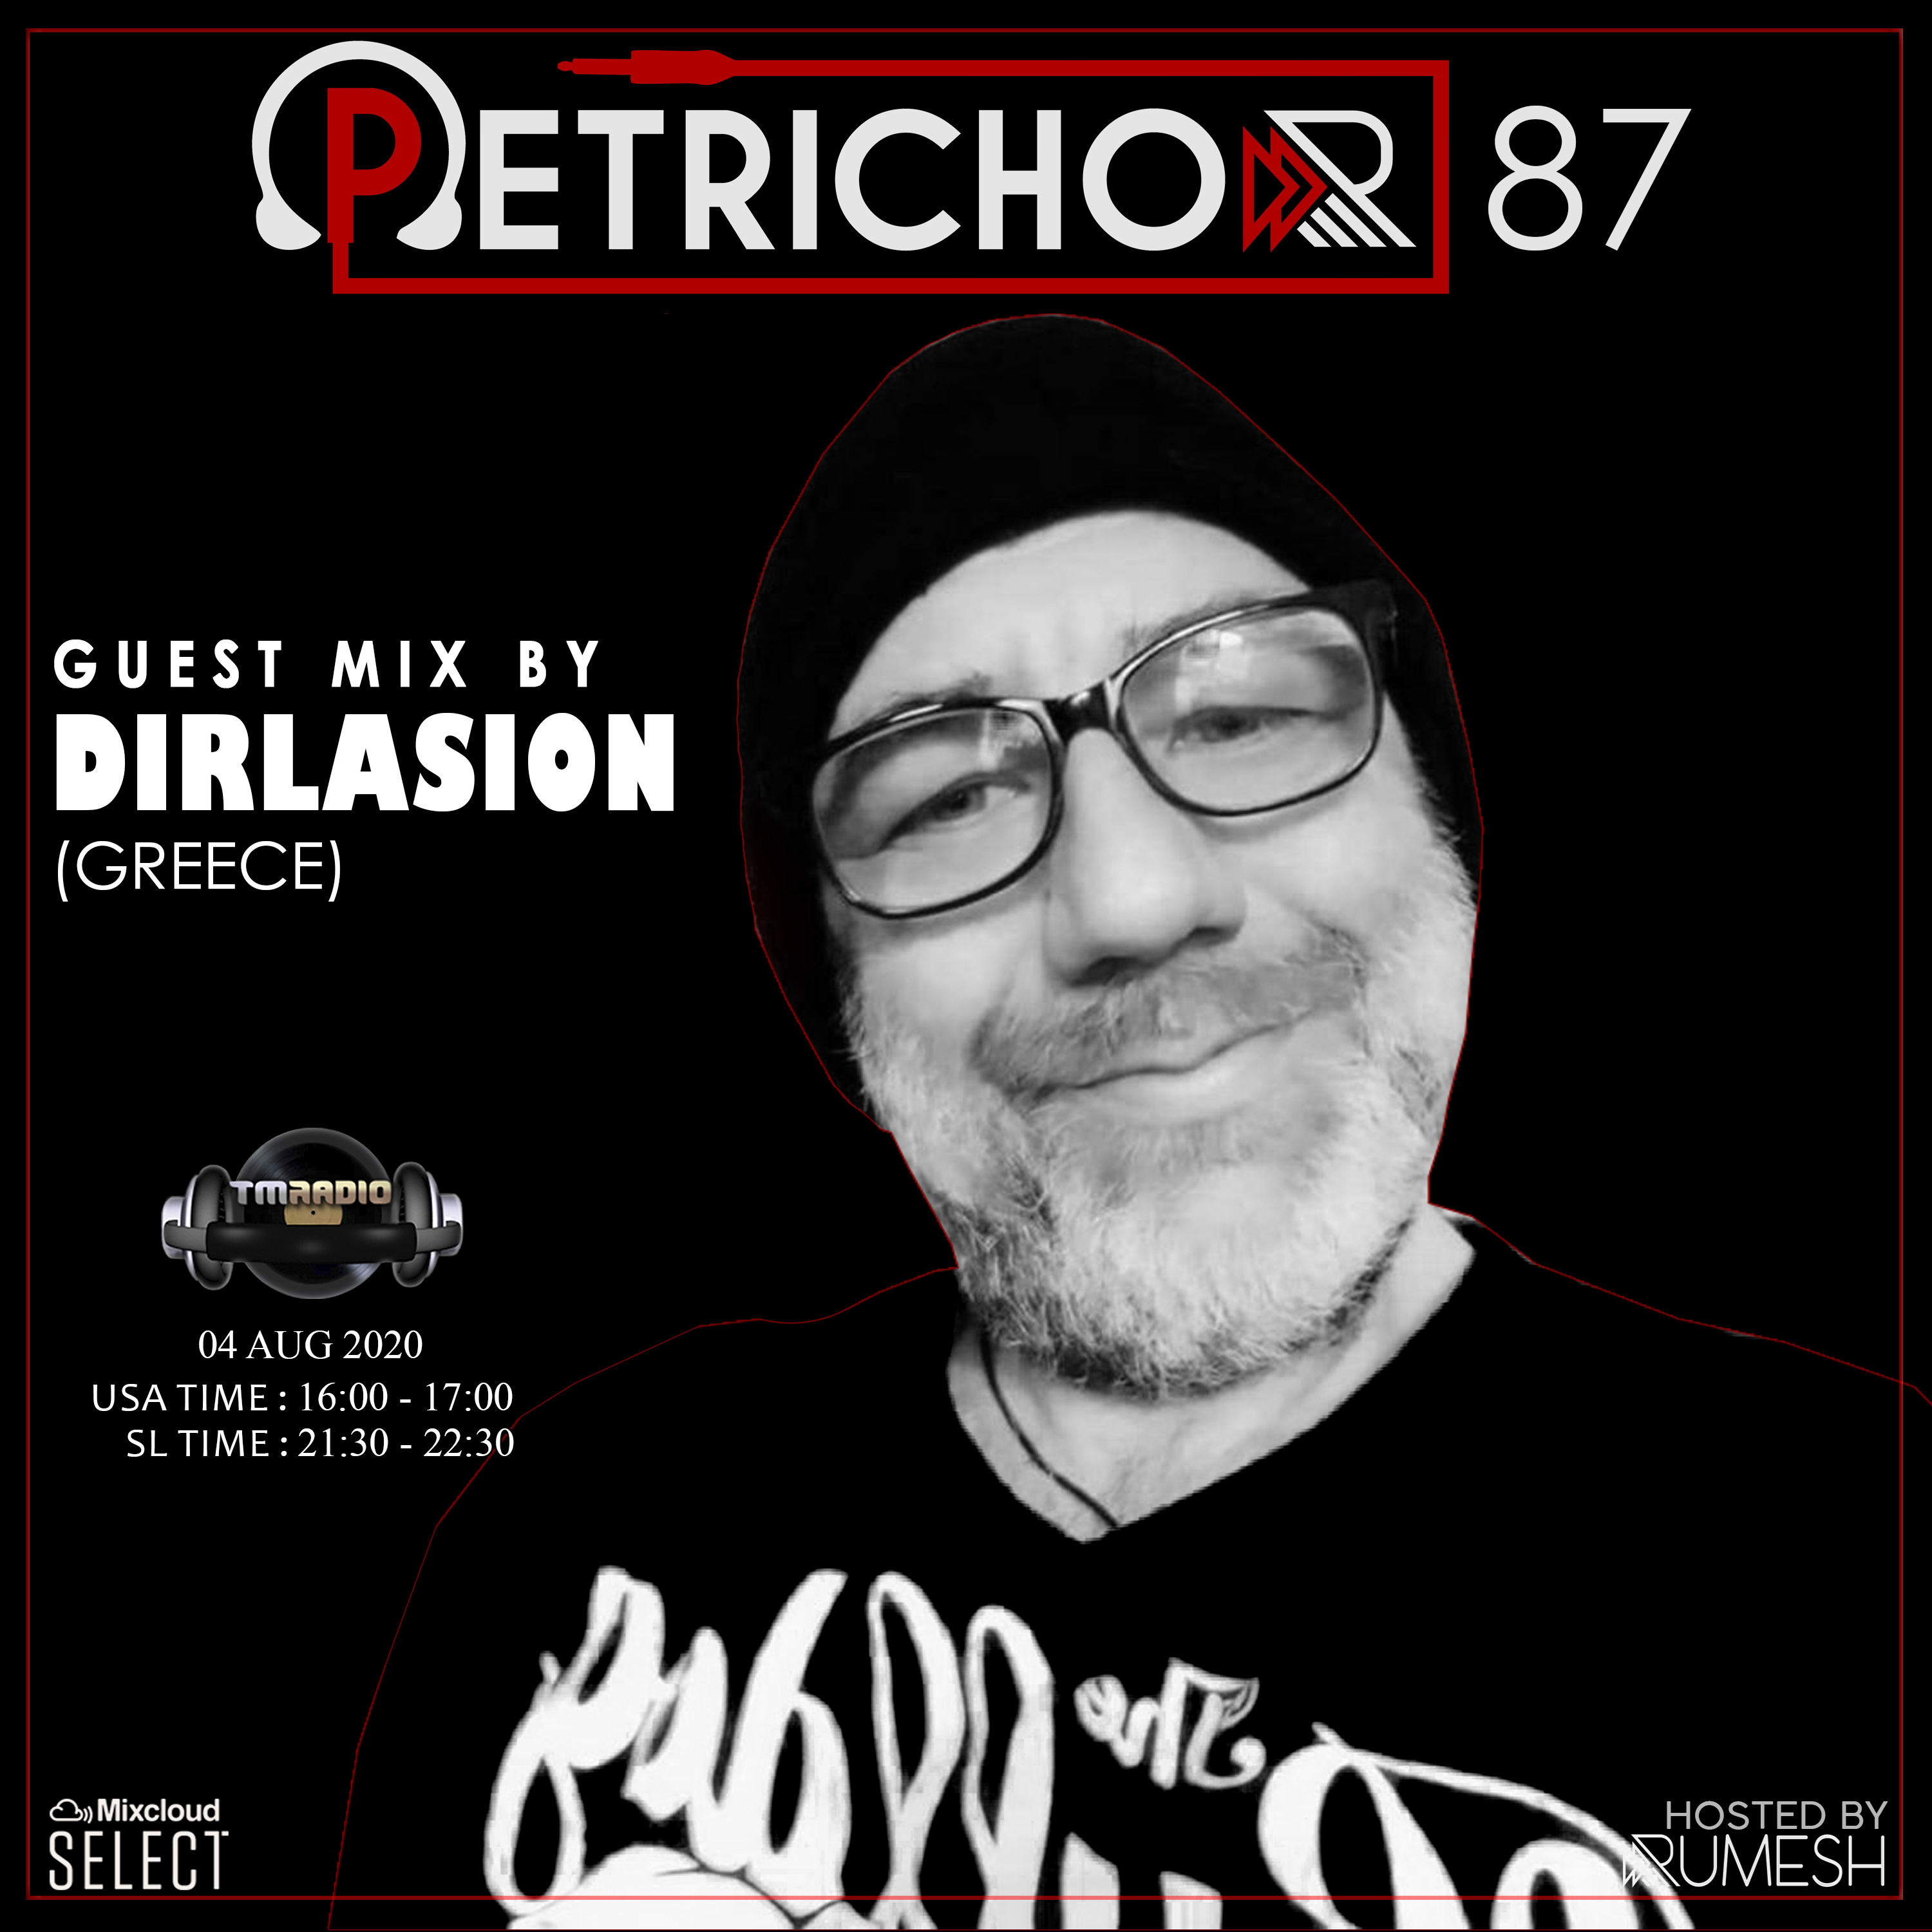 Petrichor :: Petrichor 87 guest mix by Dirlasion (Greece) (aired on August 4th, 2020) banner logo